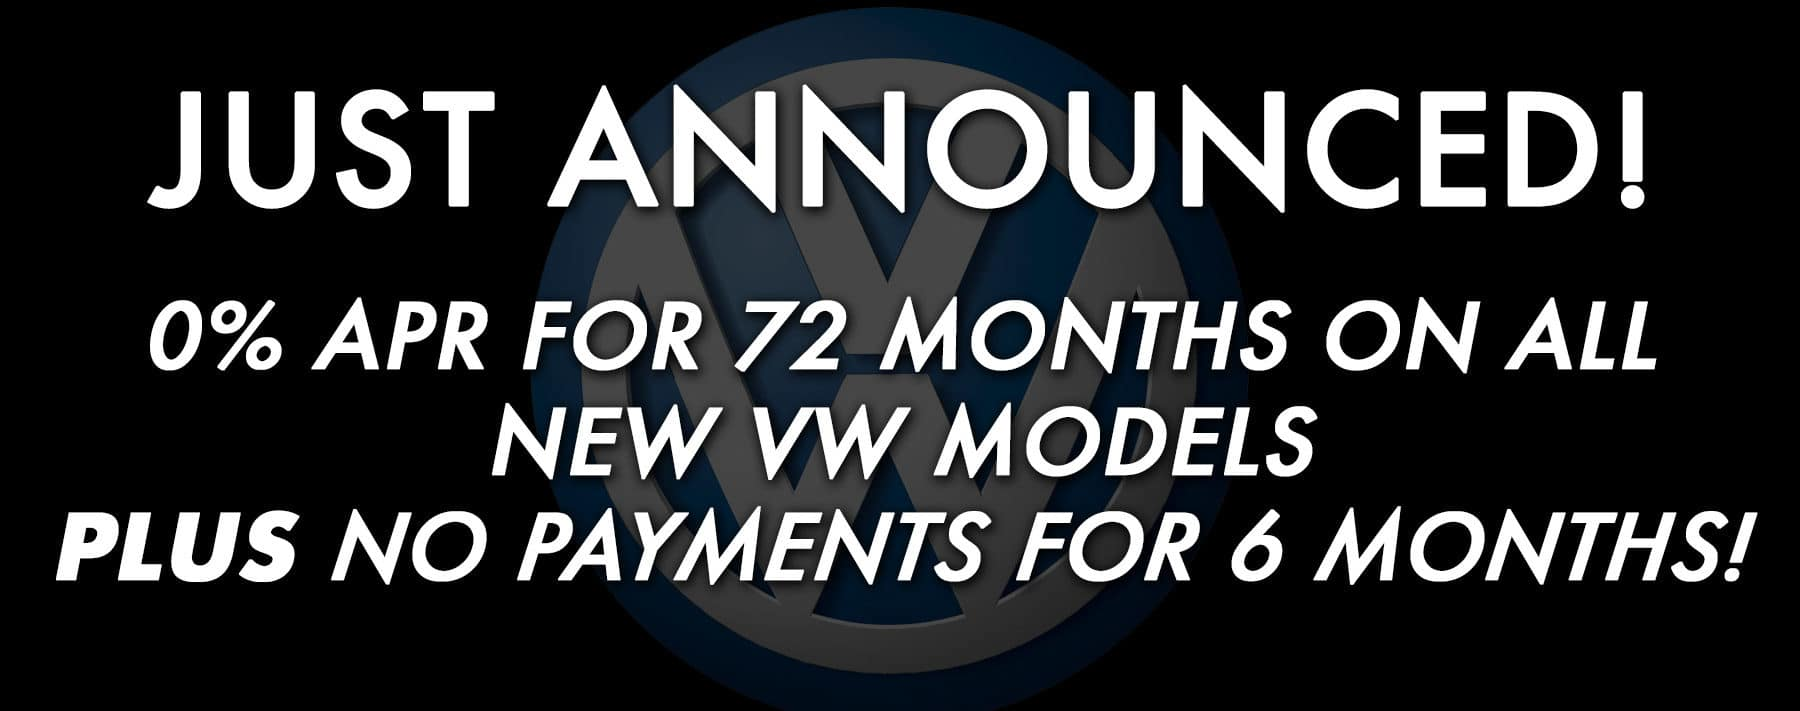 0% APR for 72 Months on all new VW models!